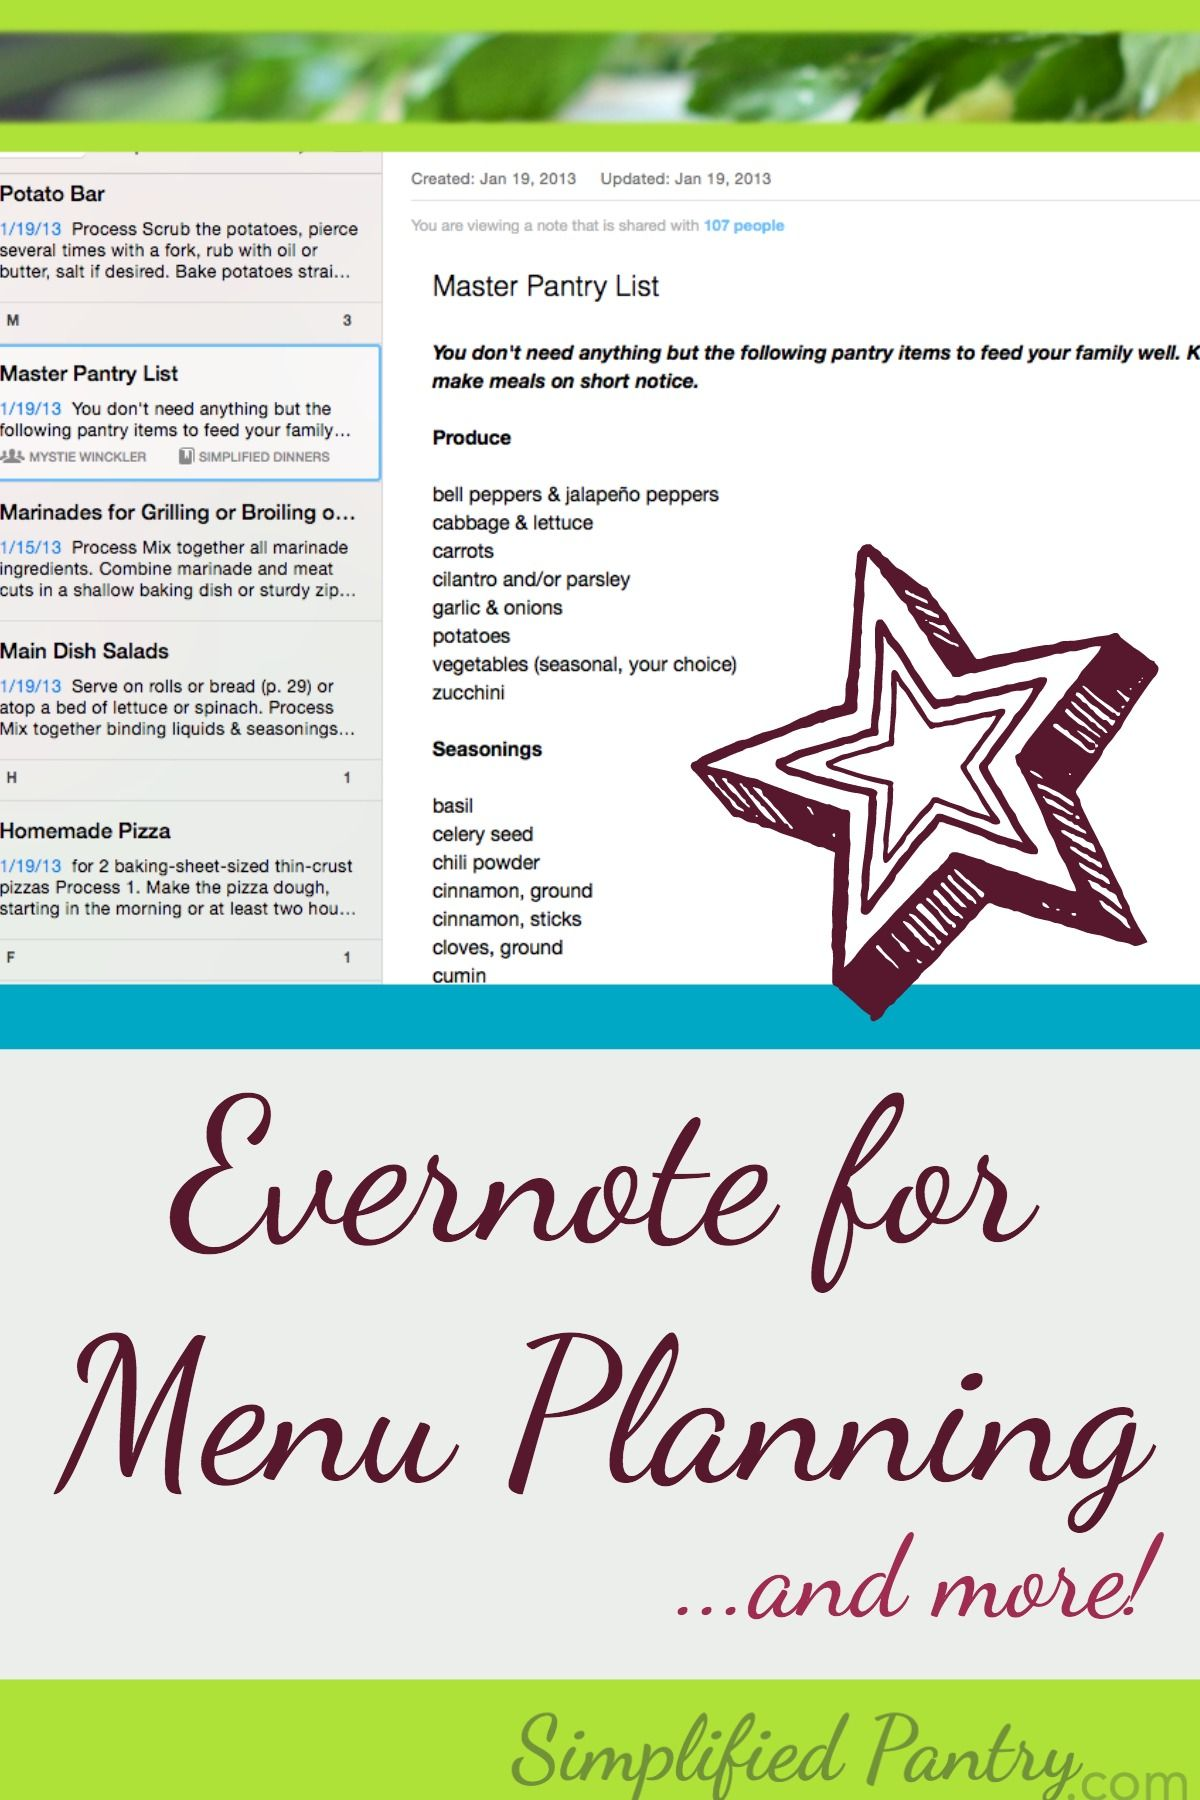 Menu Planning Is A Pain But Evernote Can Make It Simpler And